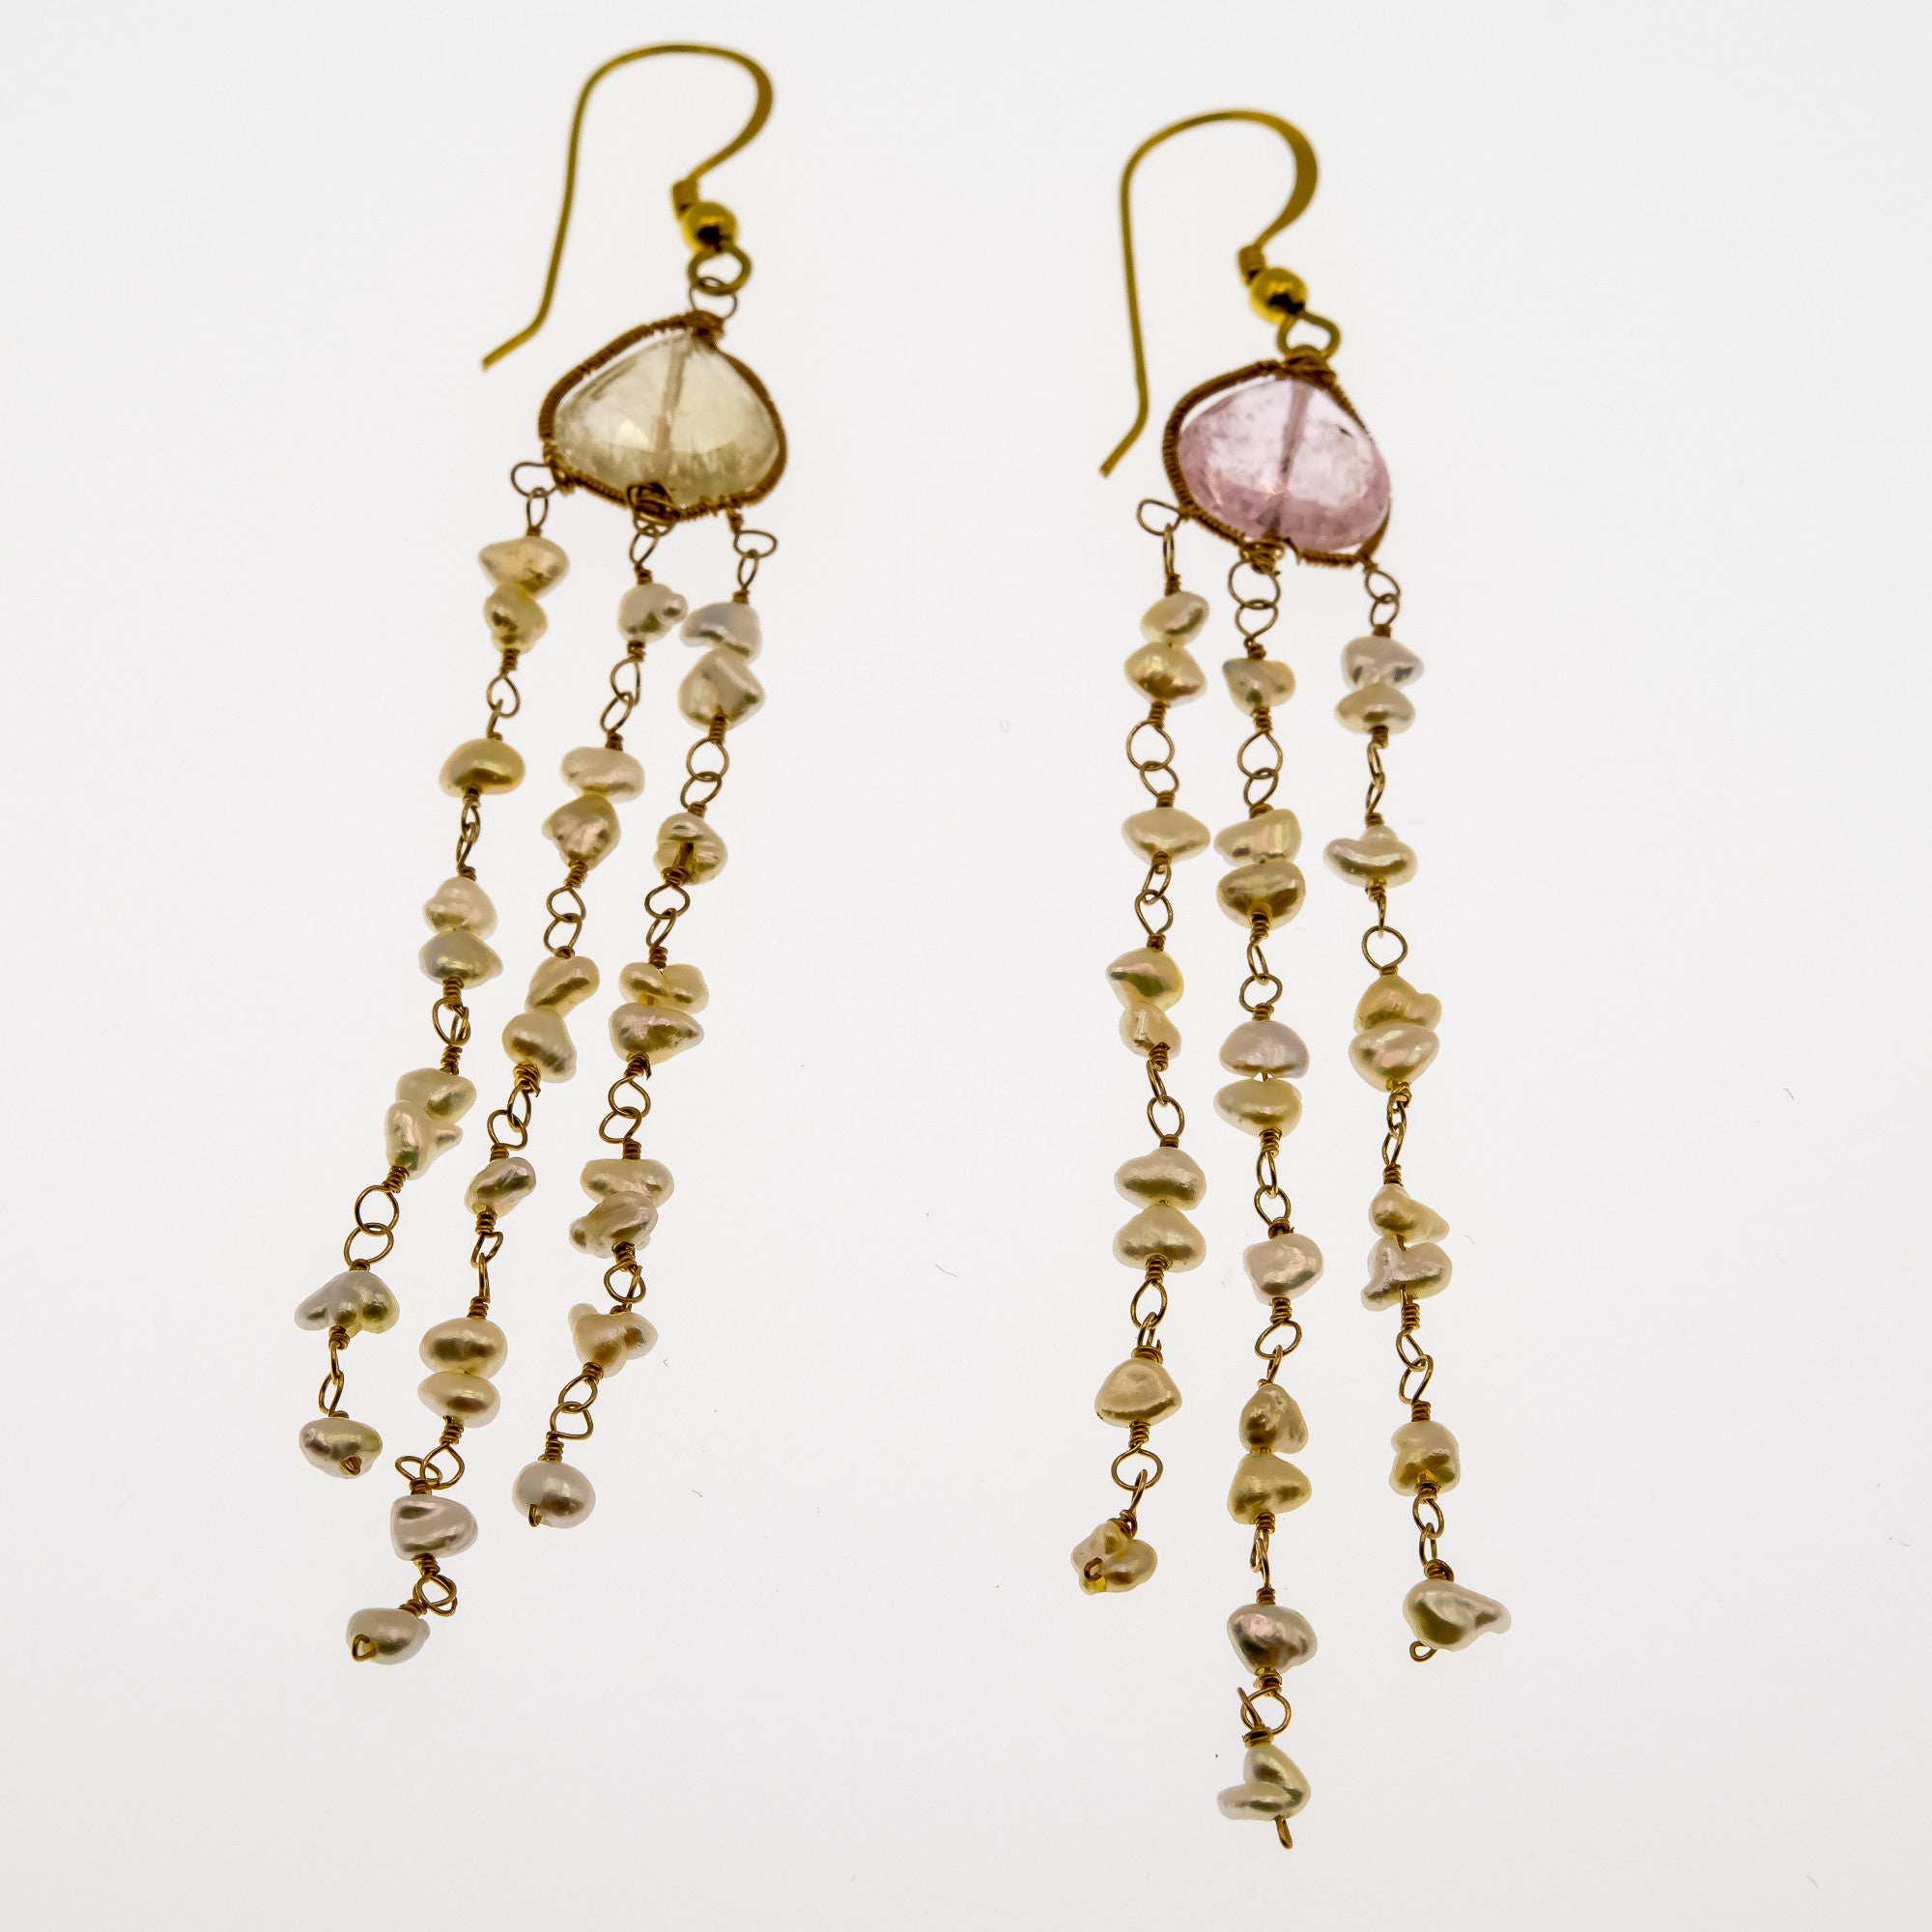 large earrings kunzite renee lewis by white loading gold operandi moda